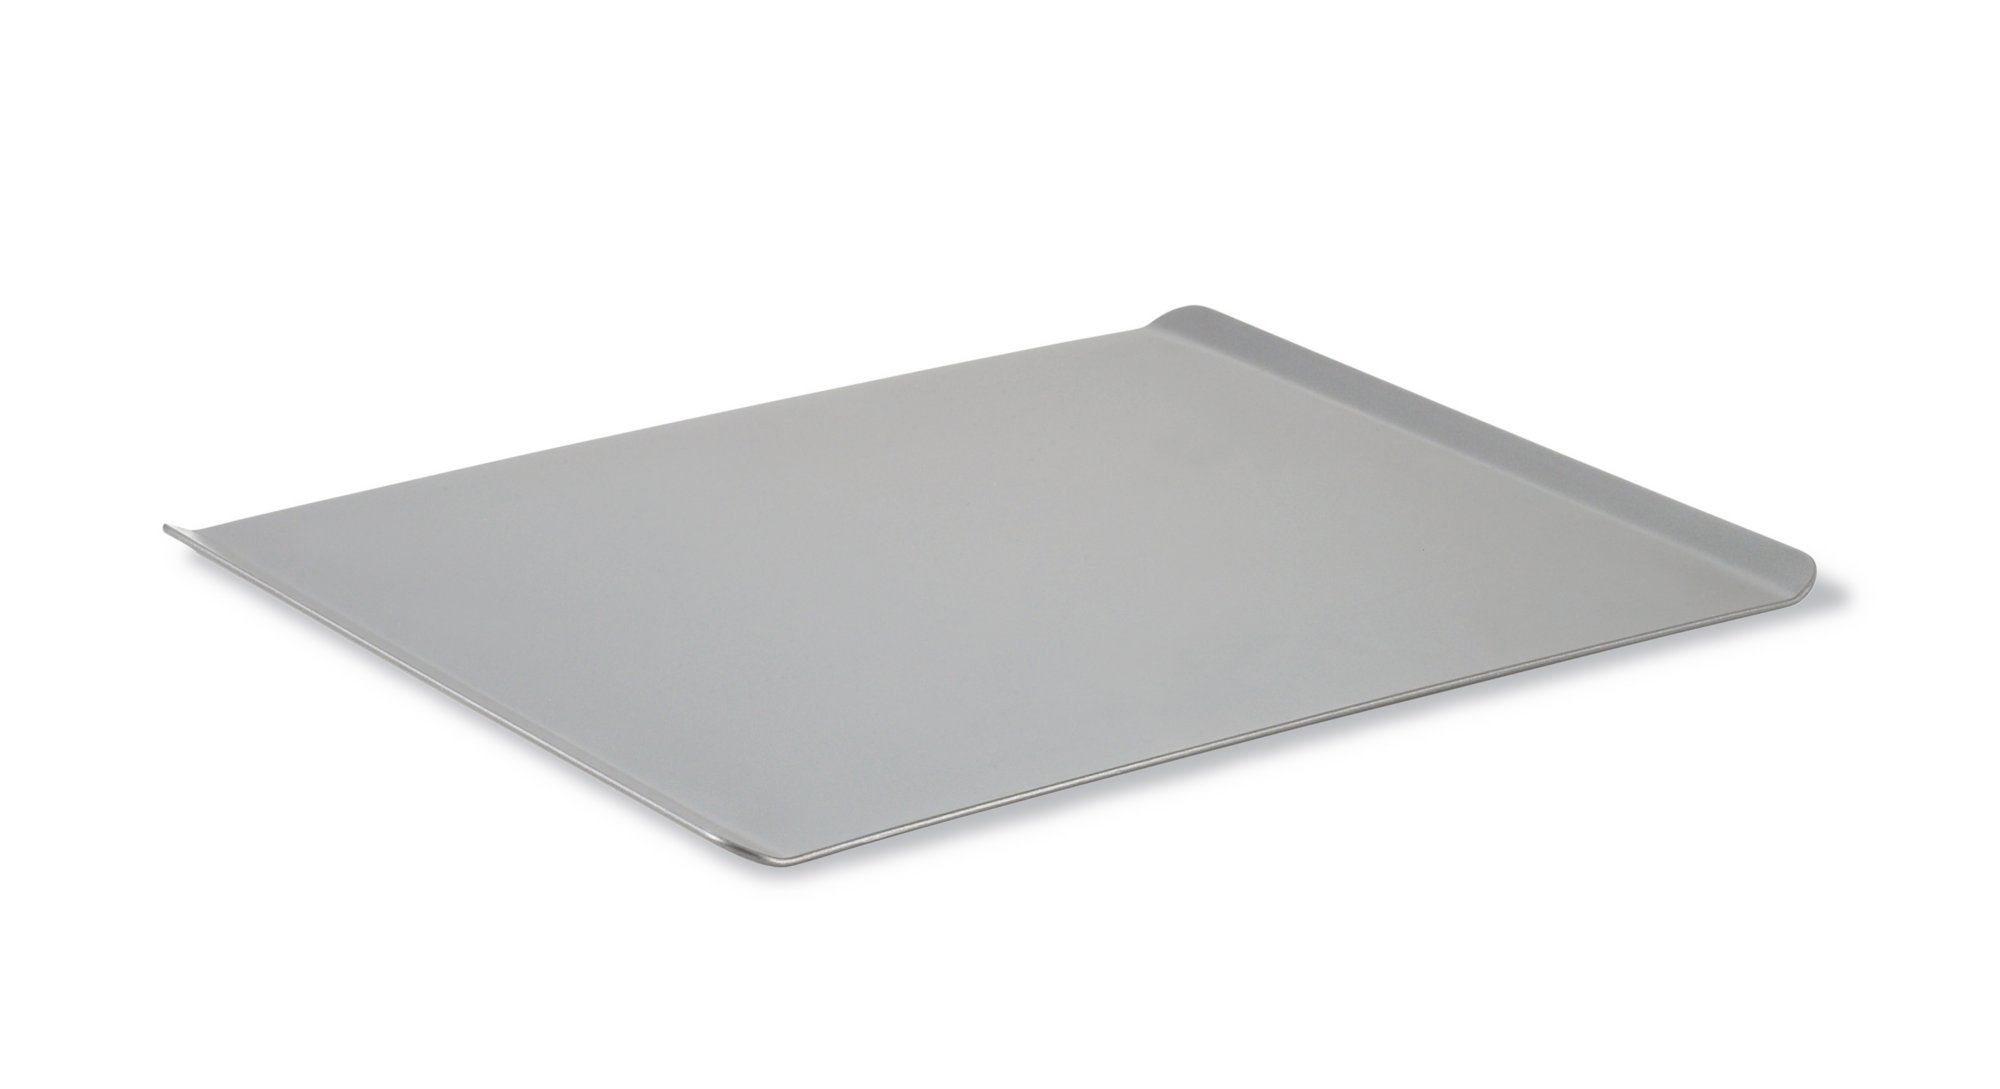 Calphalon Nonstick Bakeware 14-in. x 16-in. Insulated Cookie Sheet